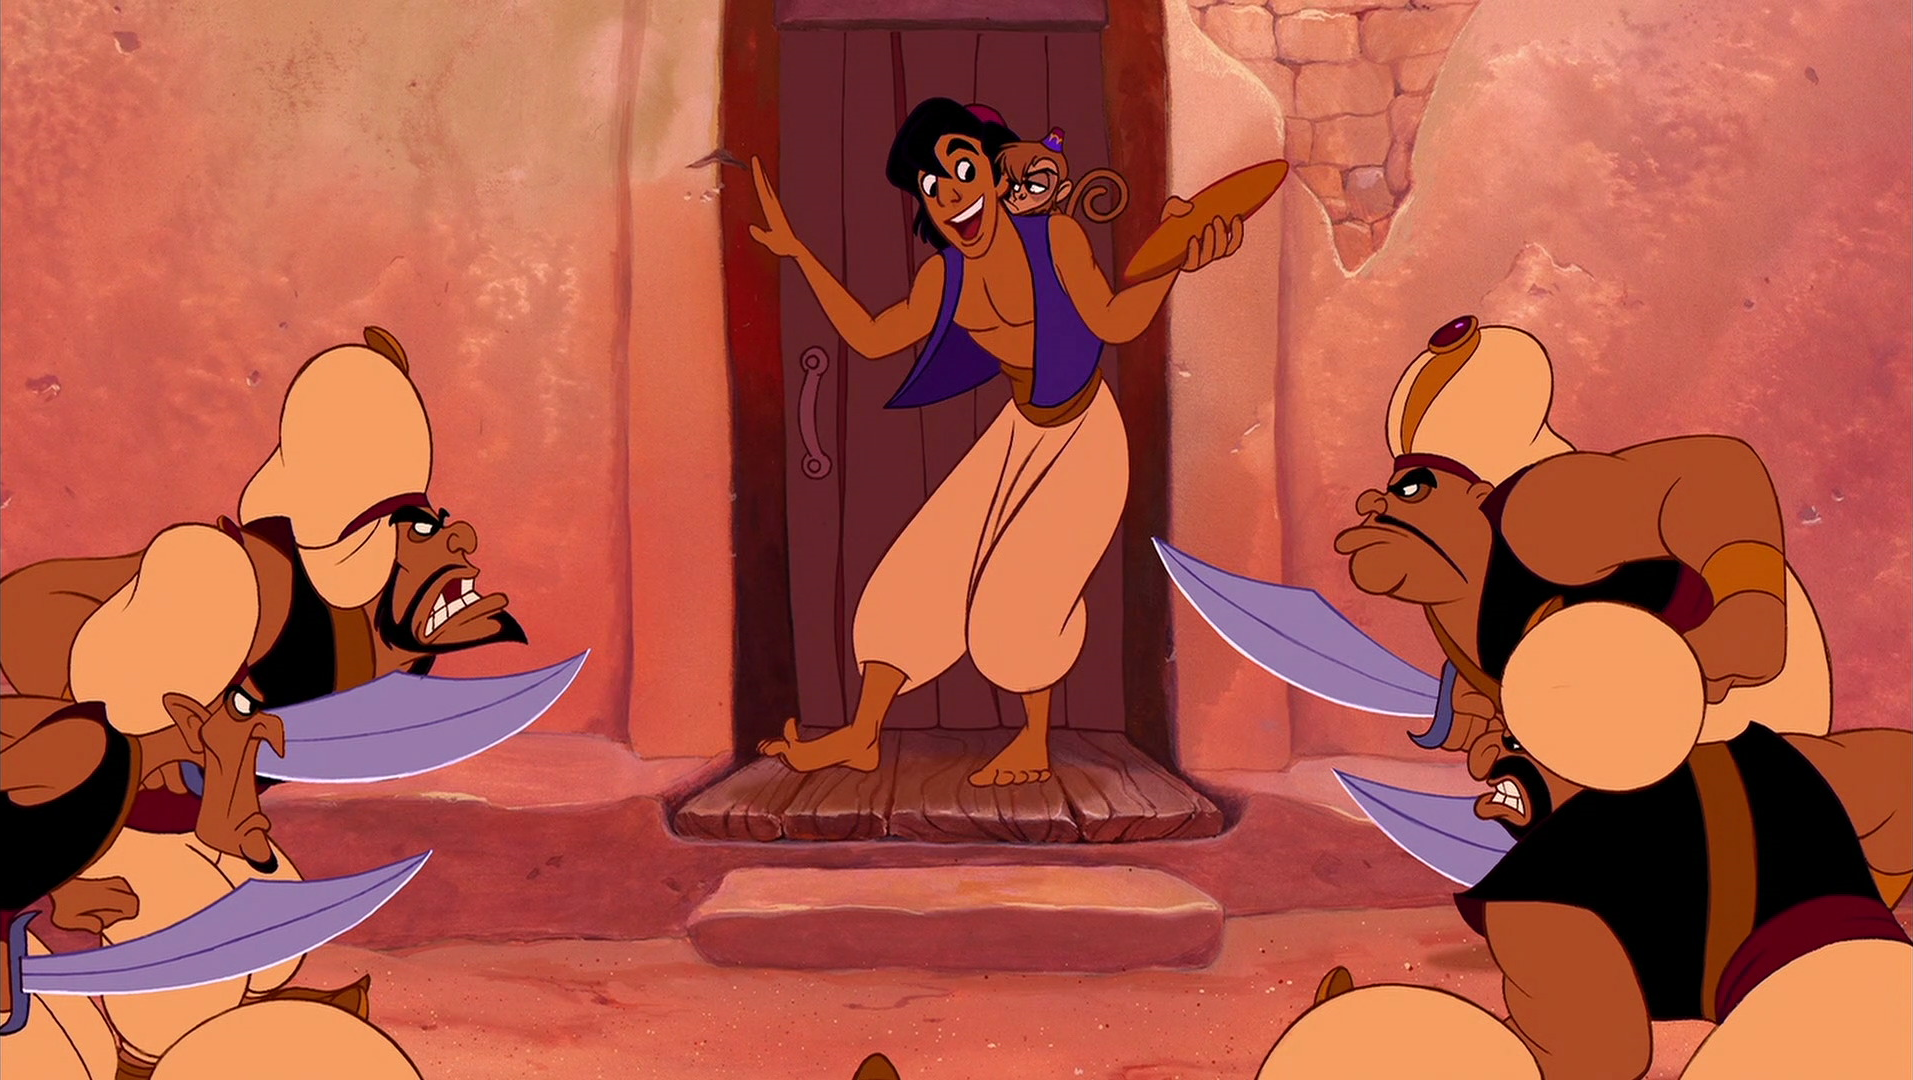 Aladdin holds stolen bread while knives are pointed at him.